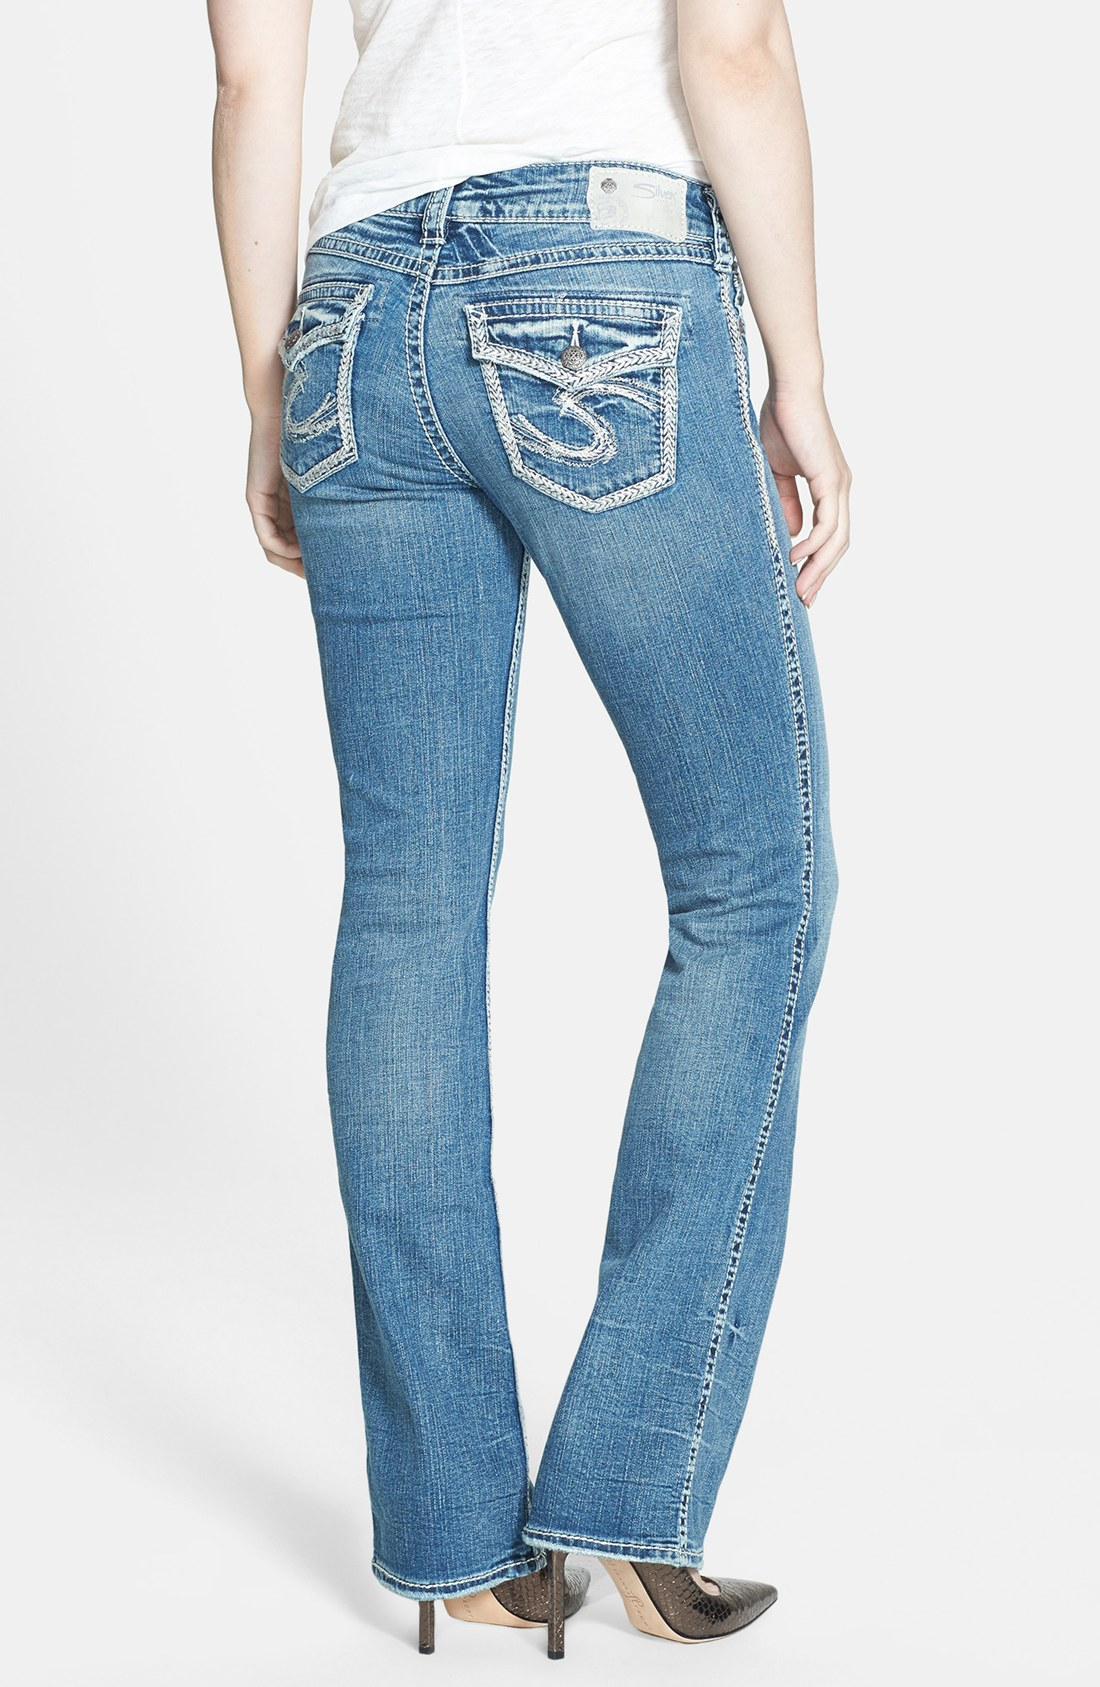 Silver jeans co. Suki Flap Pocket Bootcut Jeans in Blue | Lyst